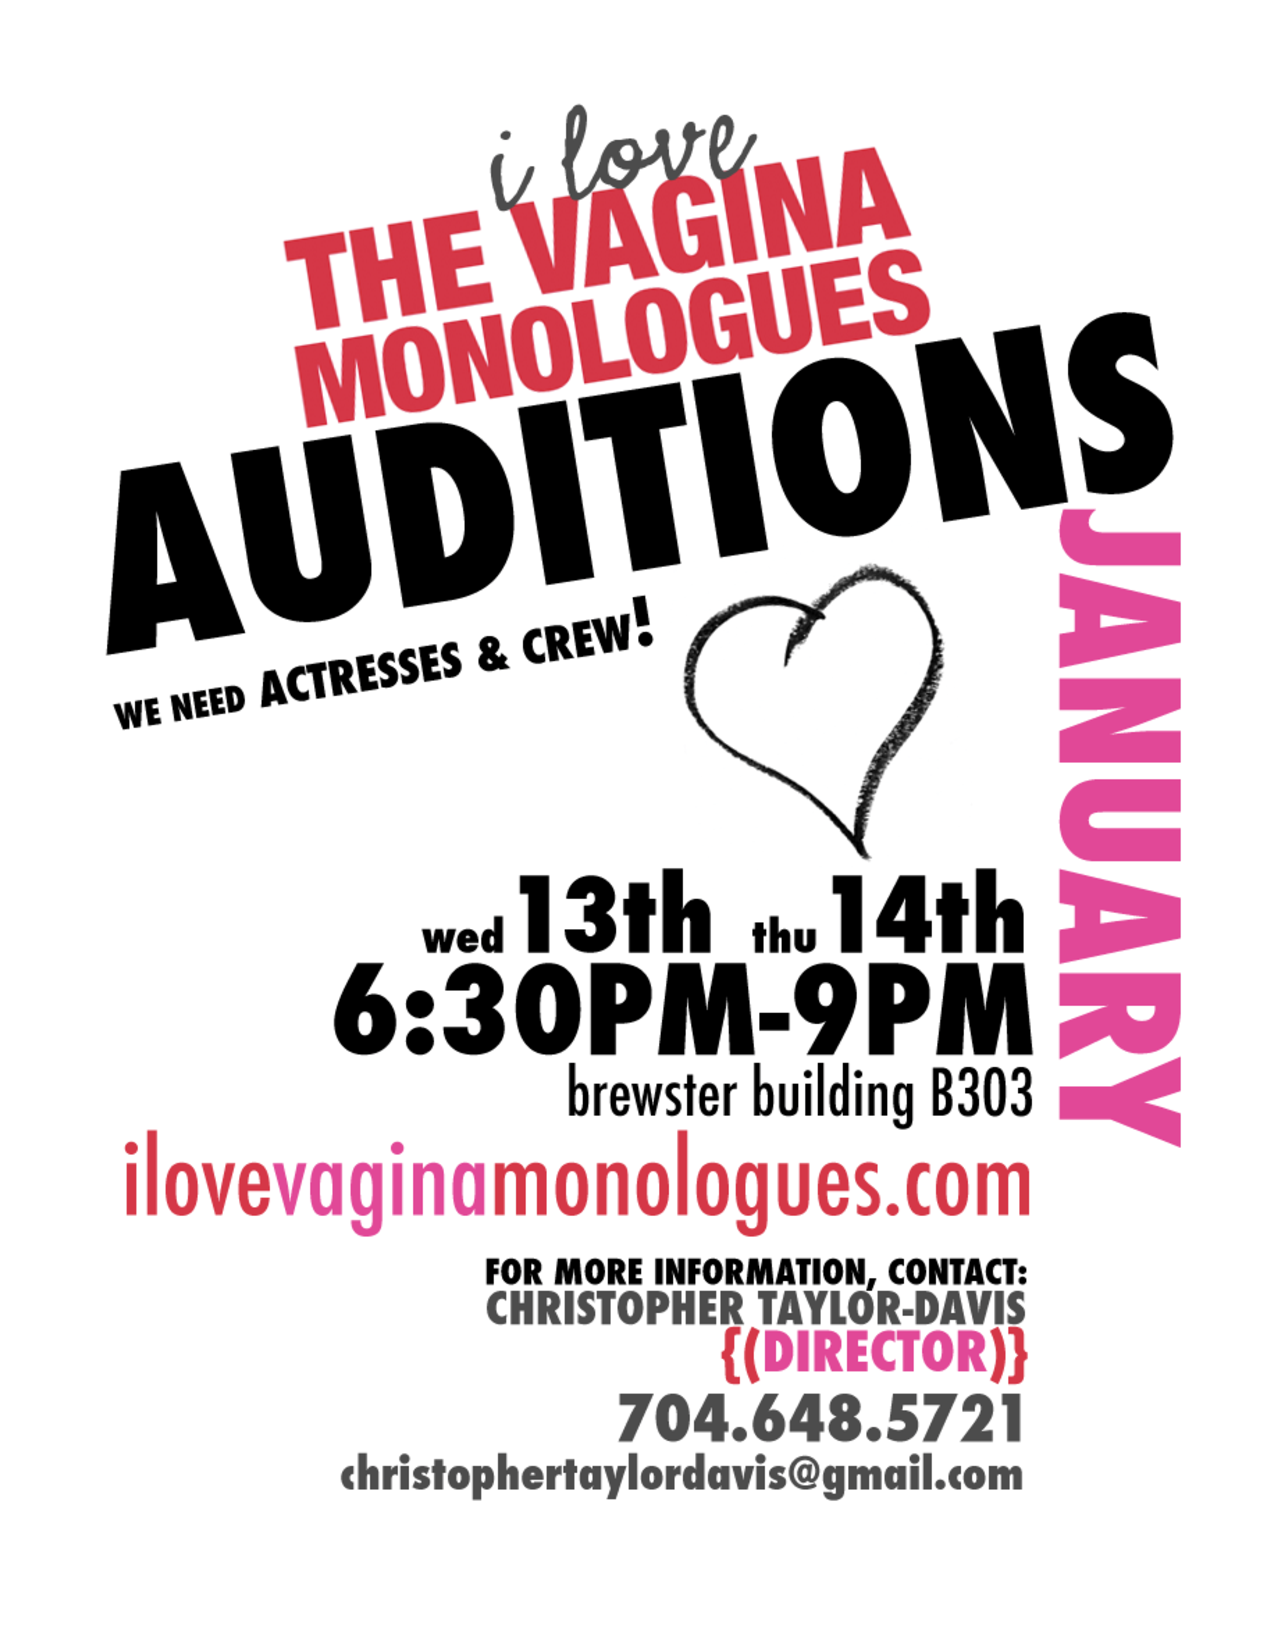 audition flyers templates google search audition flyers